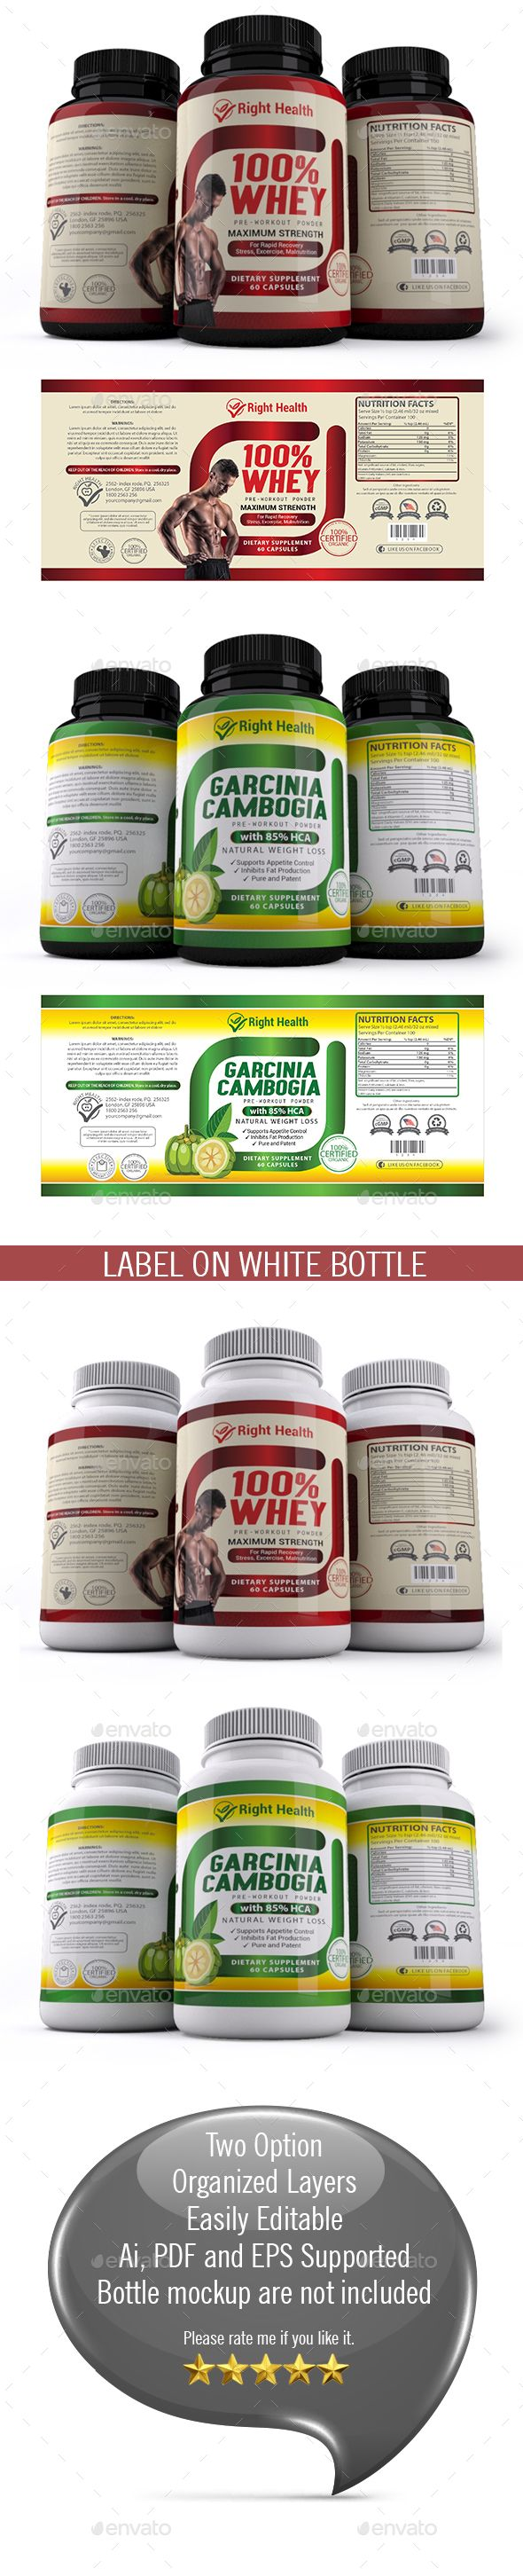 Supplement Label Templates 012 | Label templates, Ai illustrator and ...